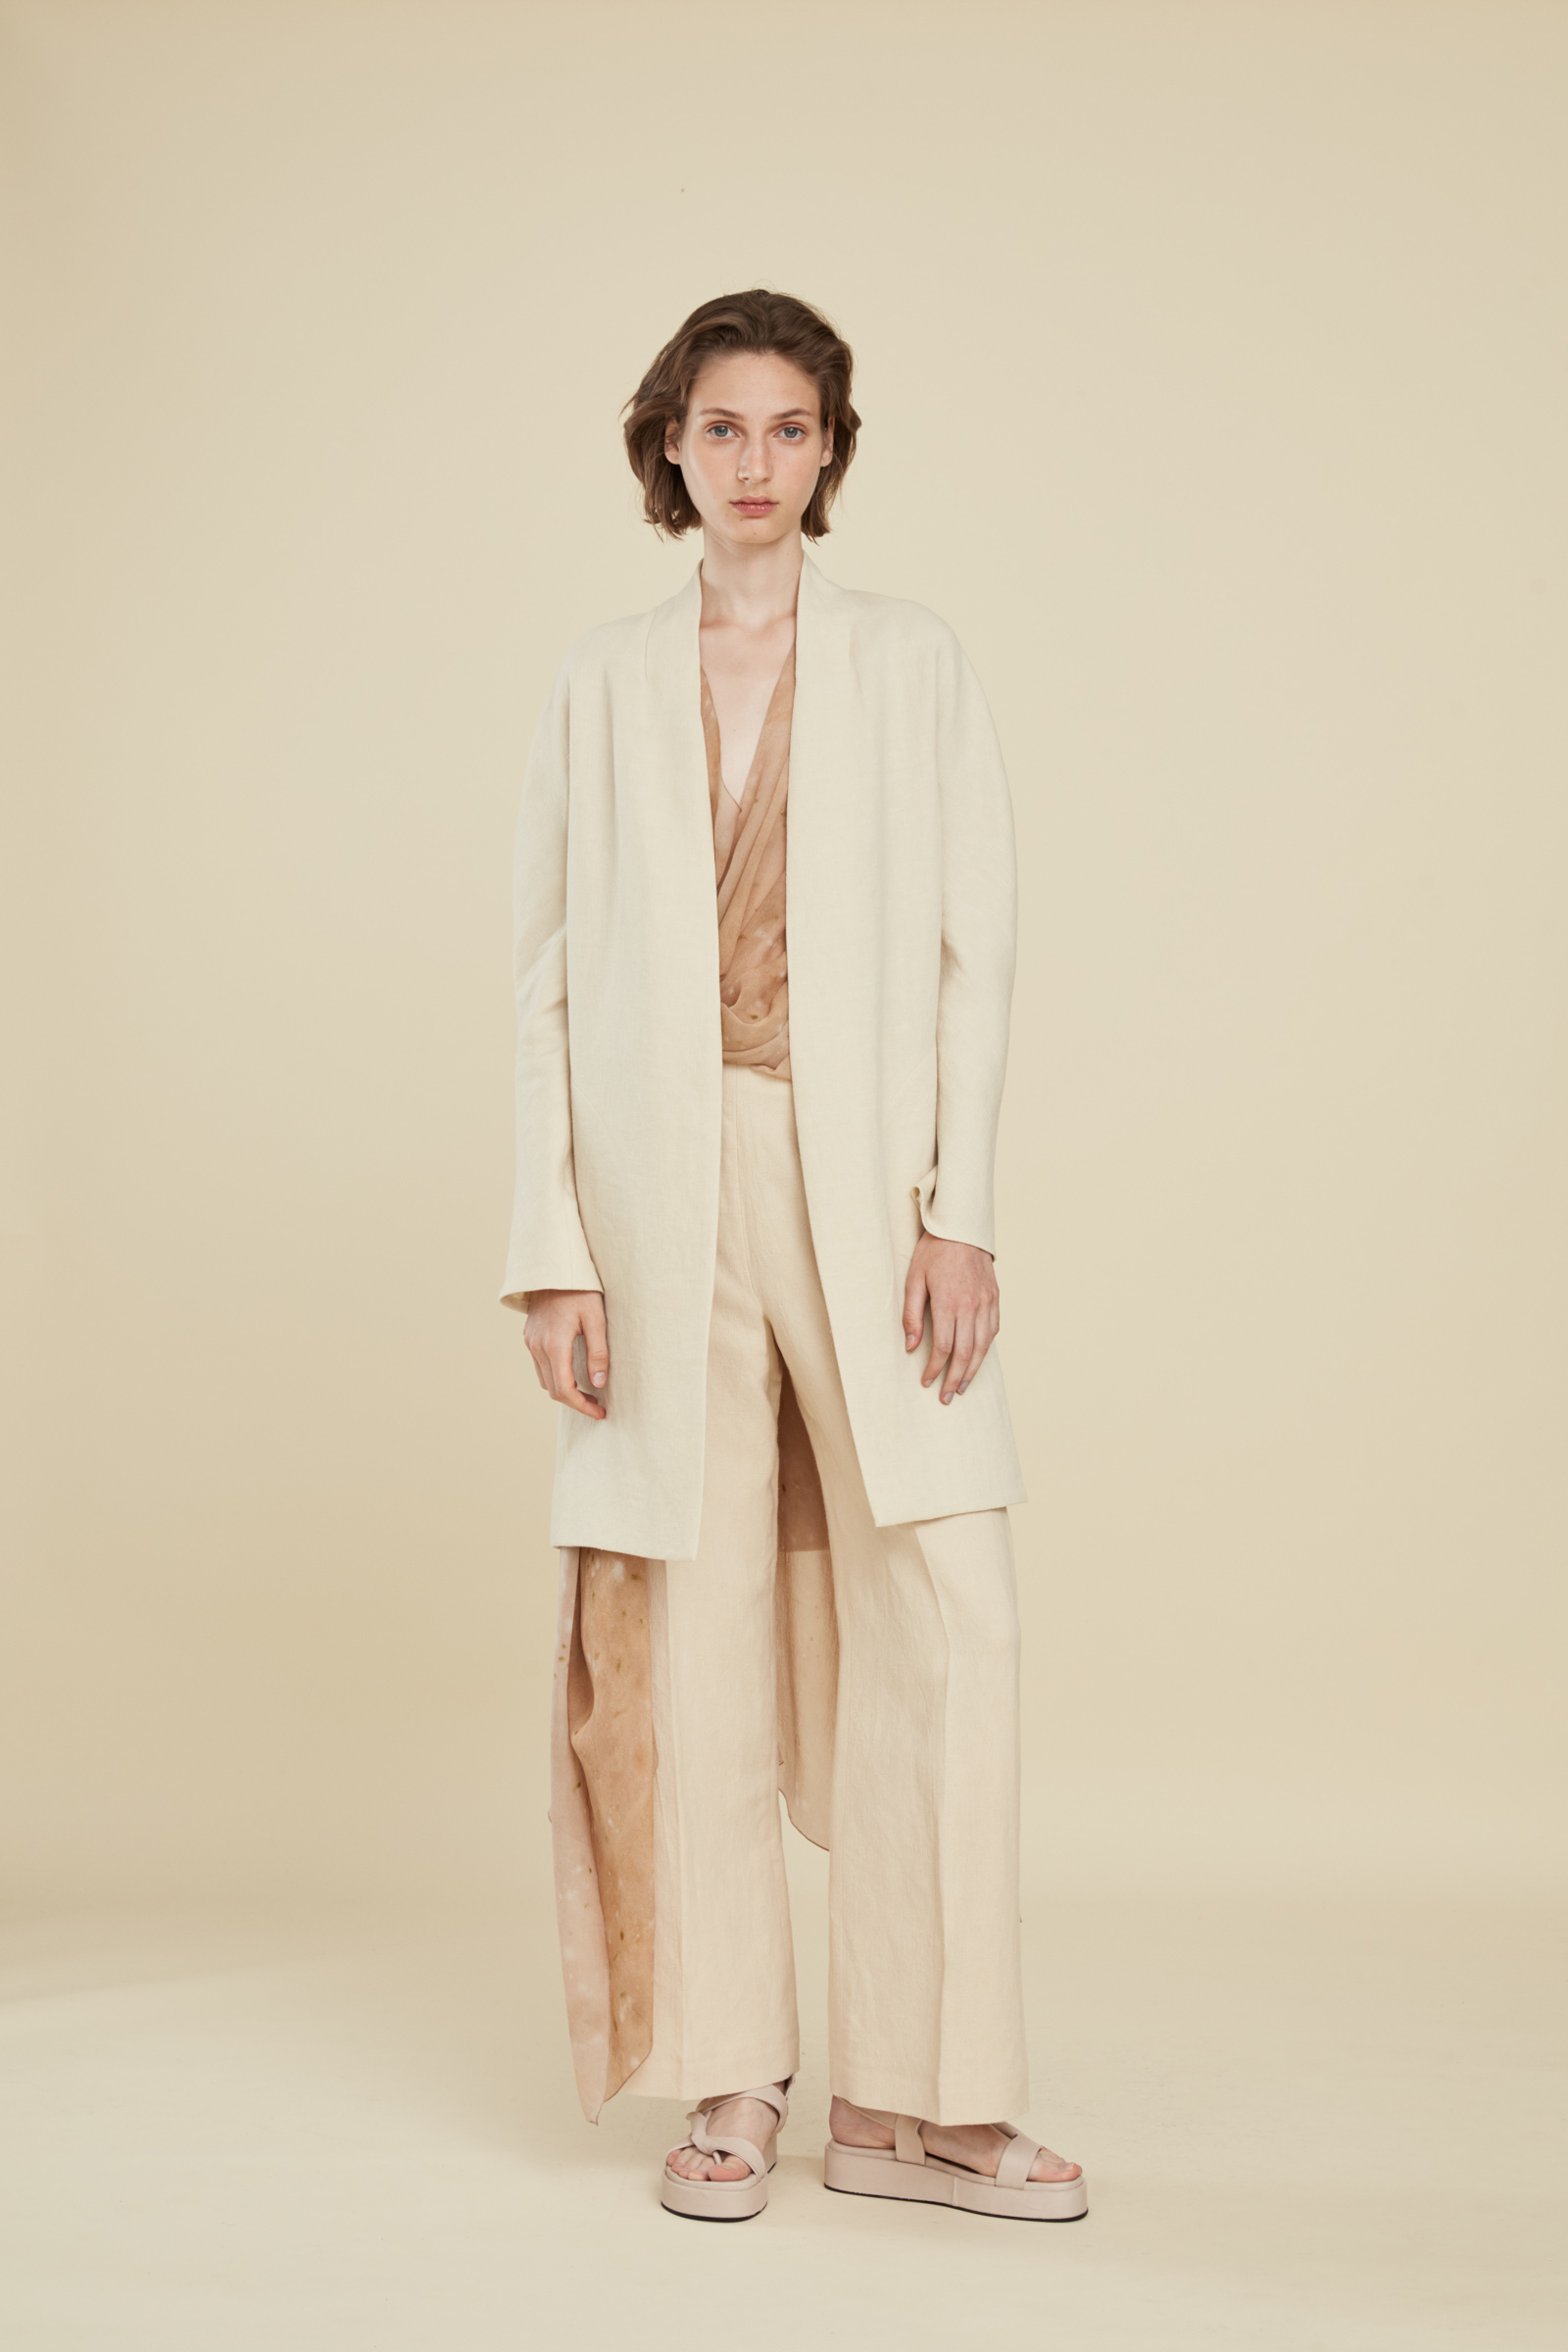 GANDHI, BEIGE JACKET, SS21 collection – Cortana Moda